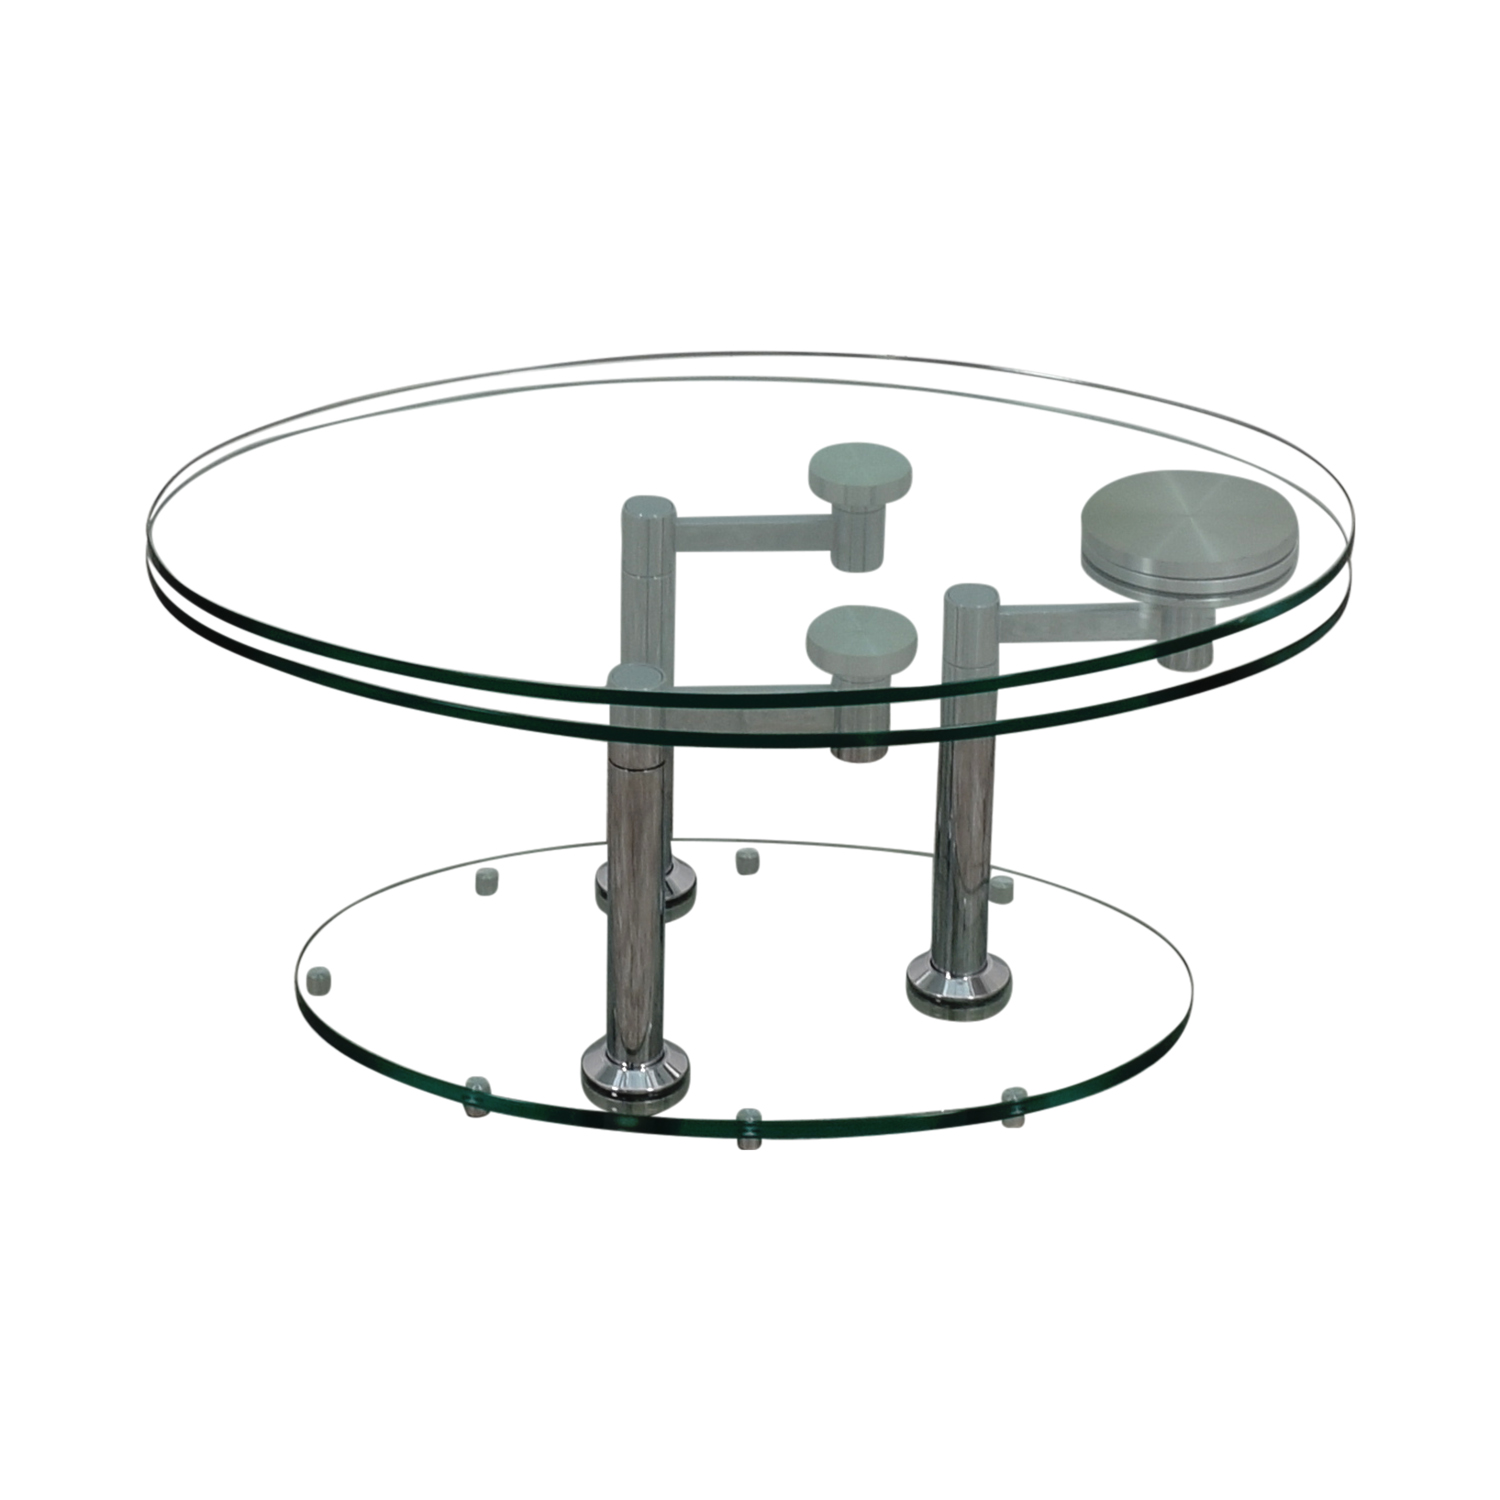 58 off art deco movable oval glass metal coffee table. Black Bedroom Furniture Sets. Home Design Ideas